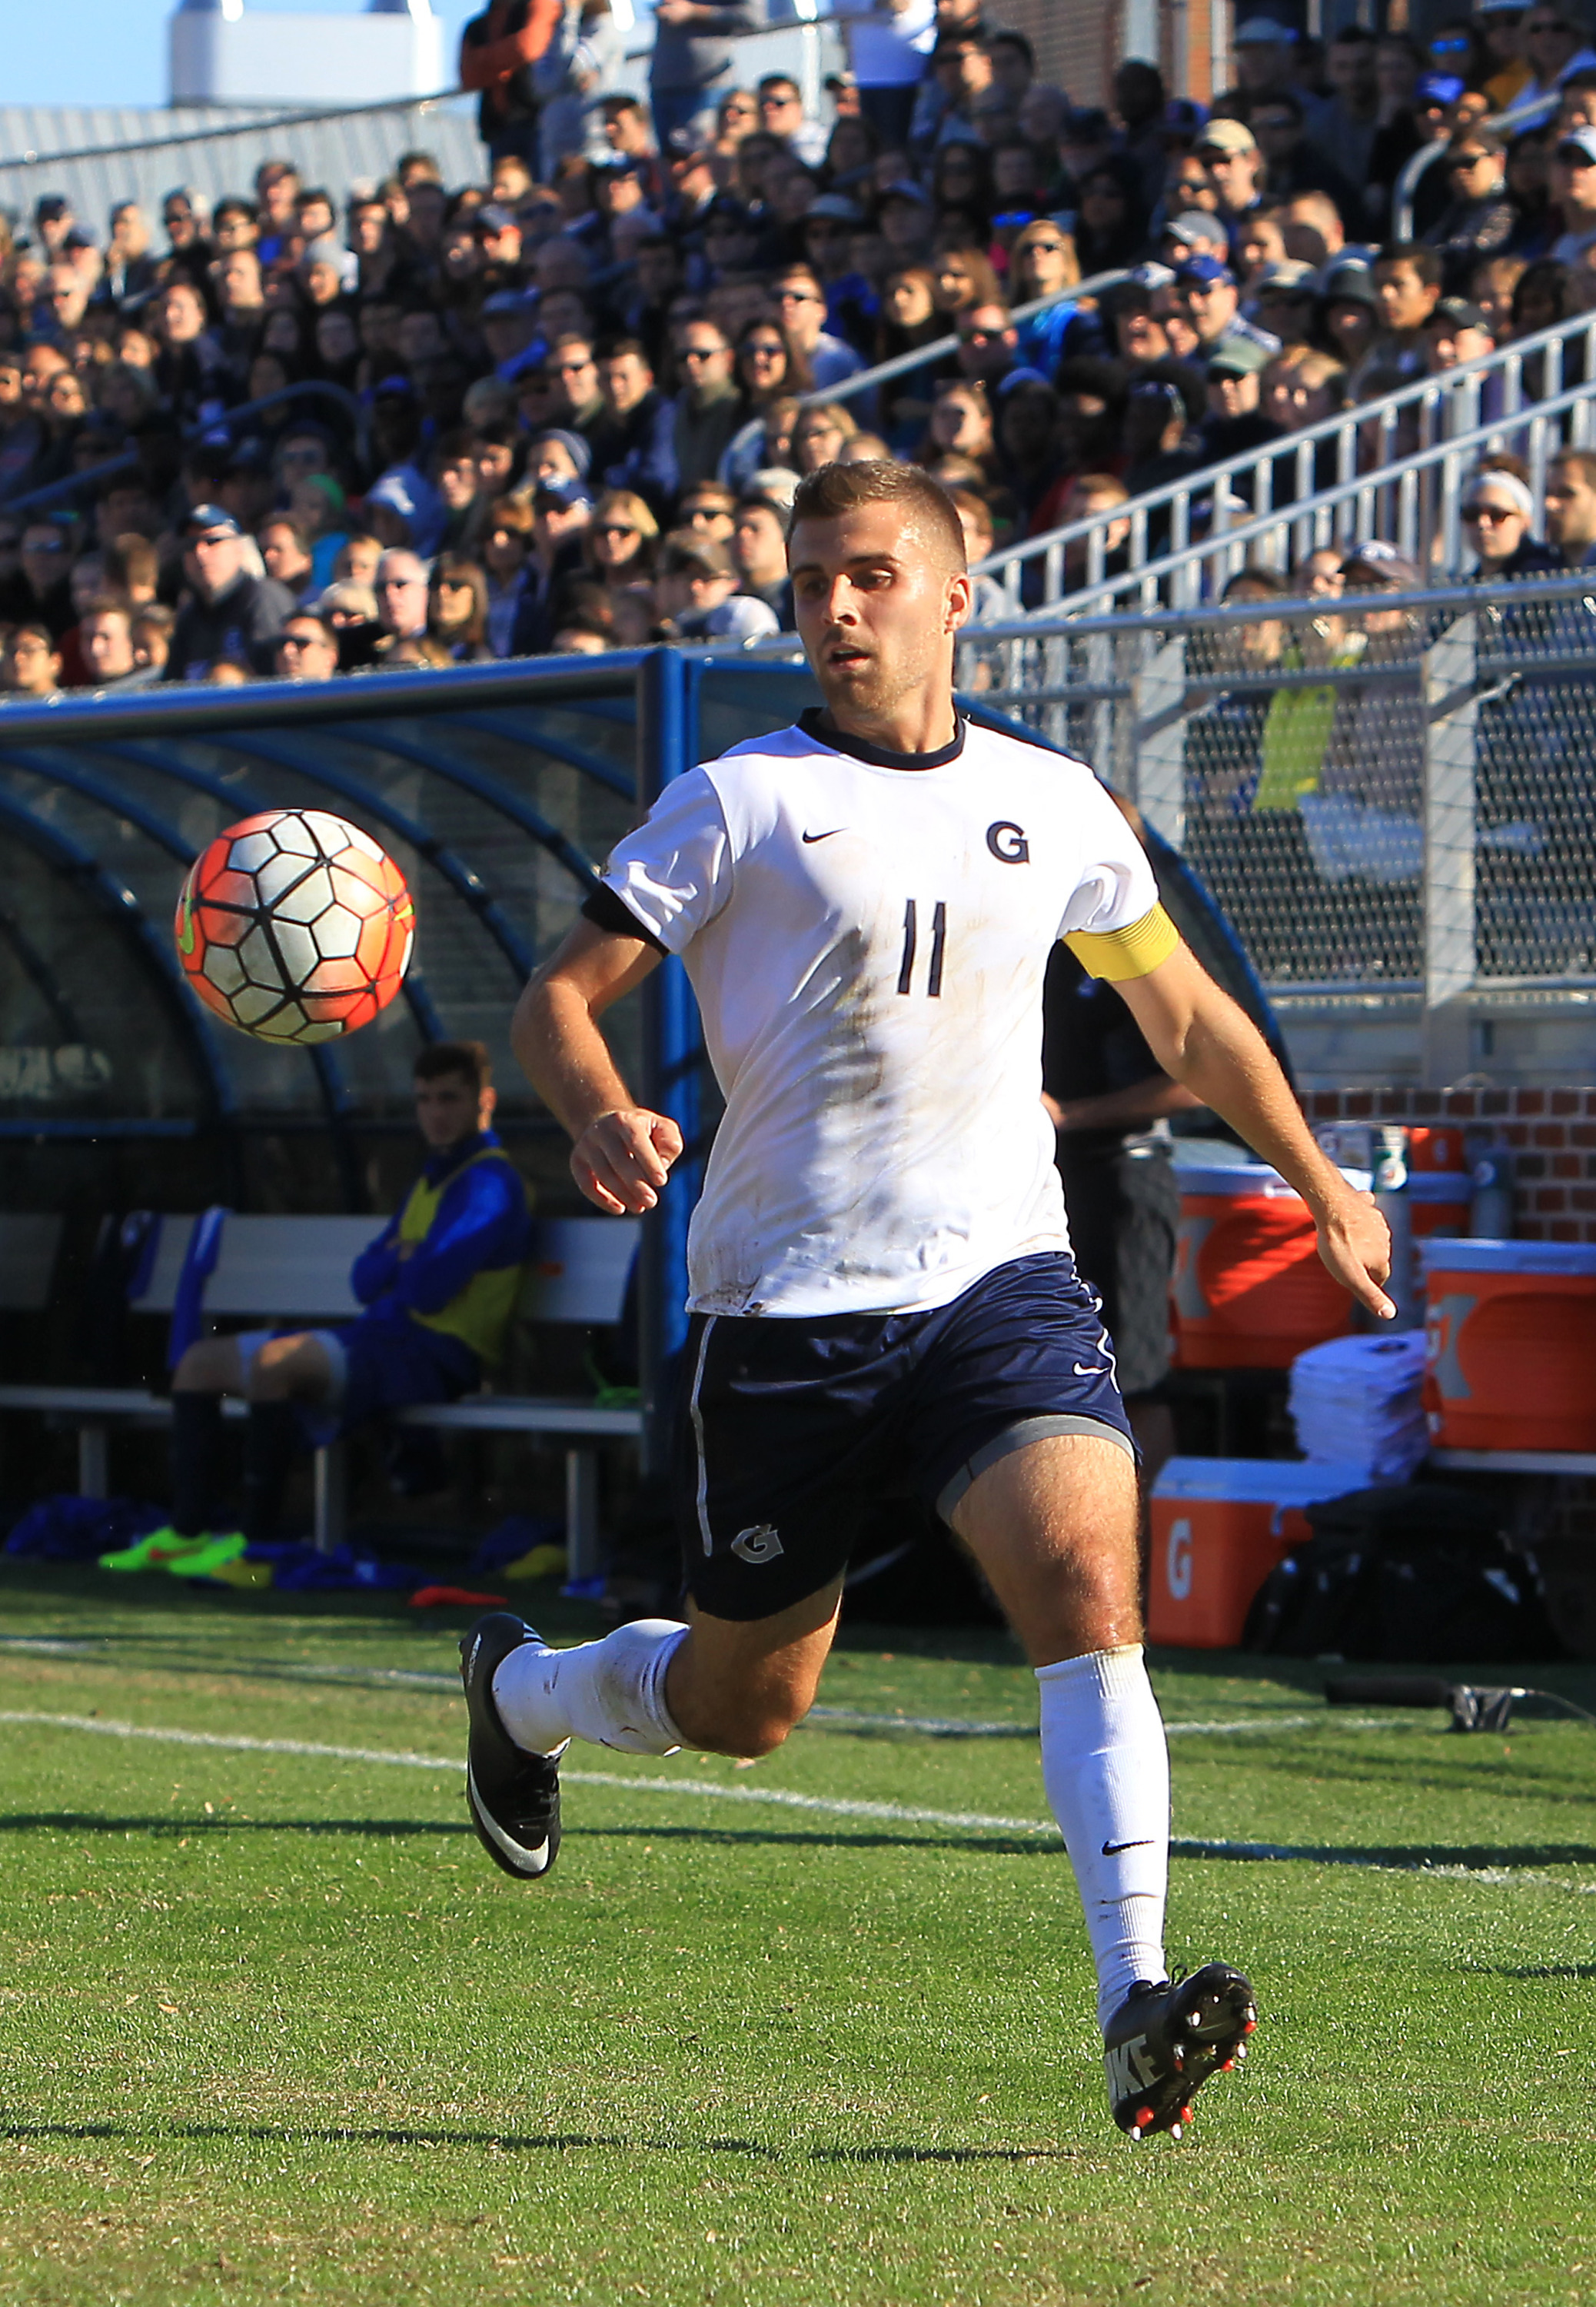 Turnley became the fourth Hoya selected in the 2016 SuperDraft